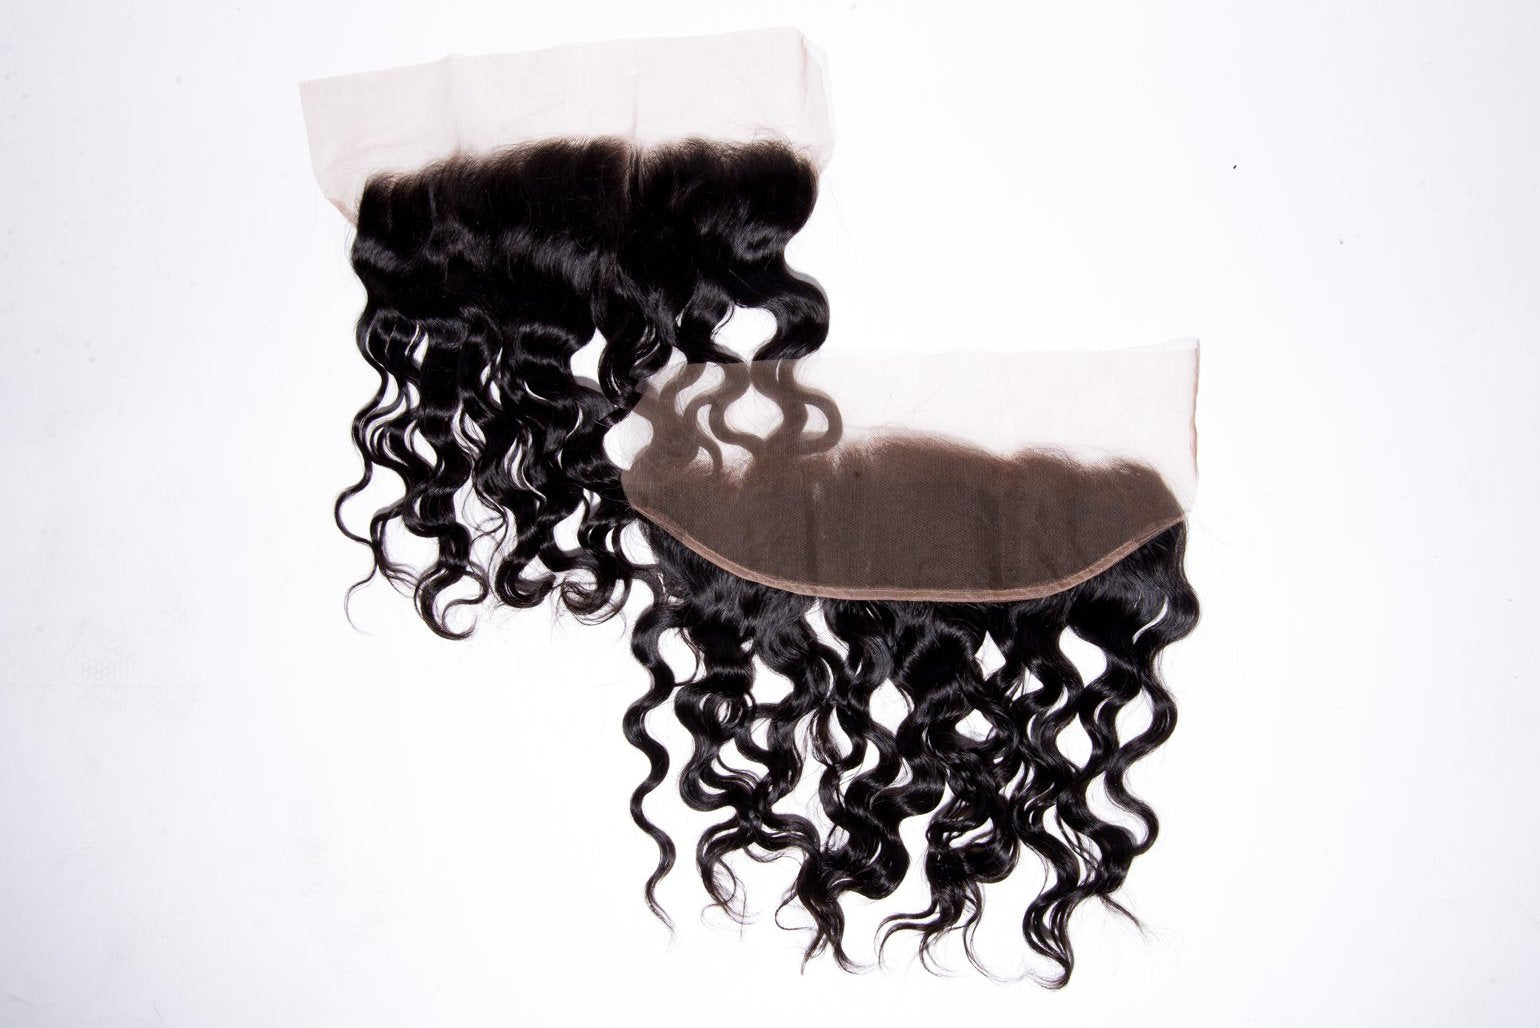 13 x 6  PERFECT MATCH ILLUSION MESH LACE FRONTAL